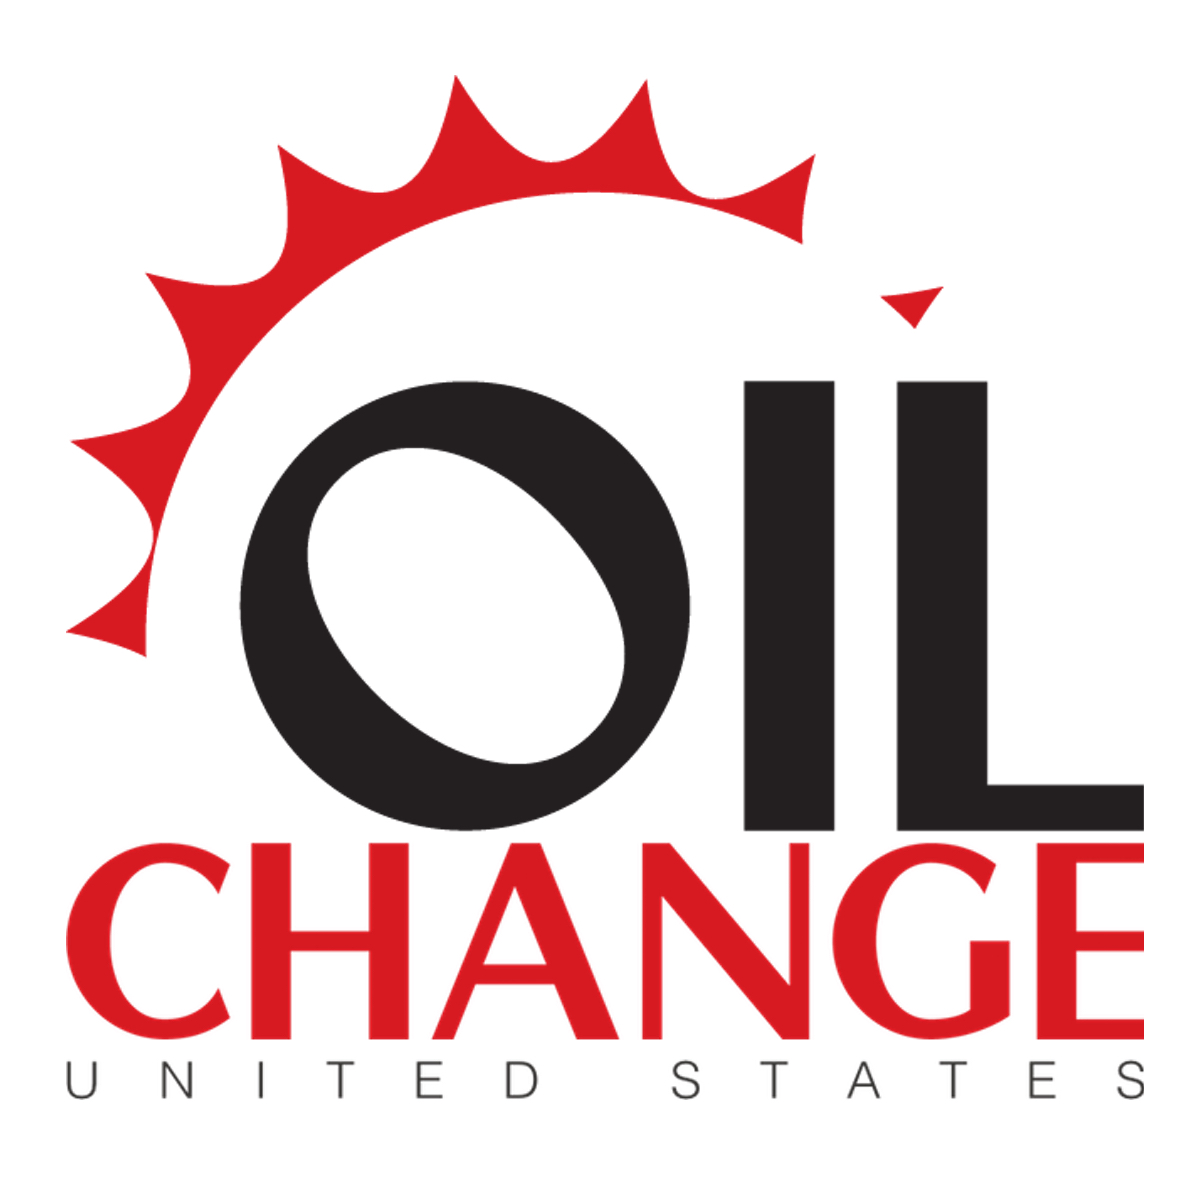 Coalition of progressive groups call on Democrats in new Congress to reject fossil fuel money, push bold and aggressive climate  policies